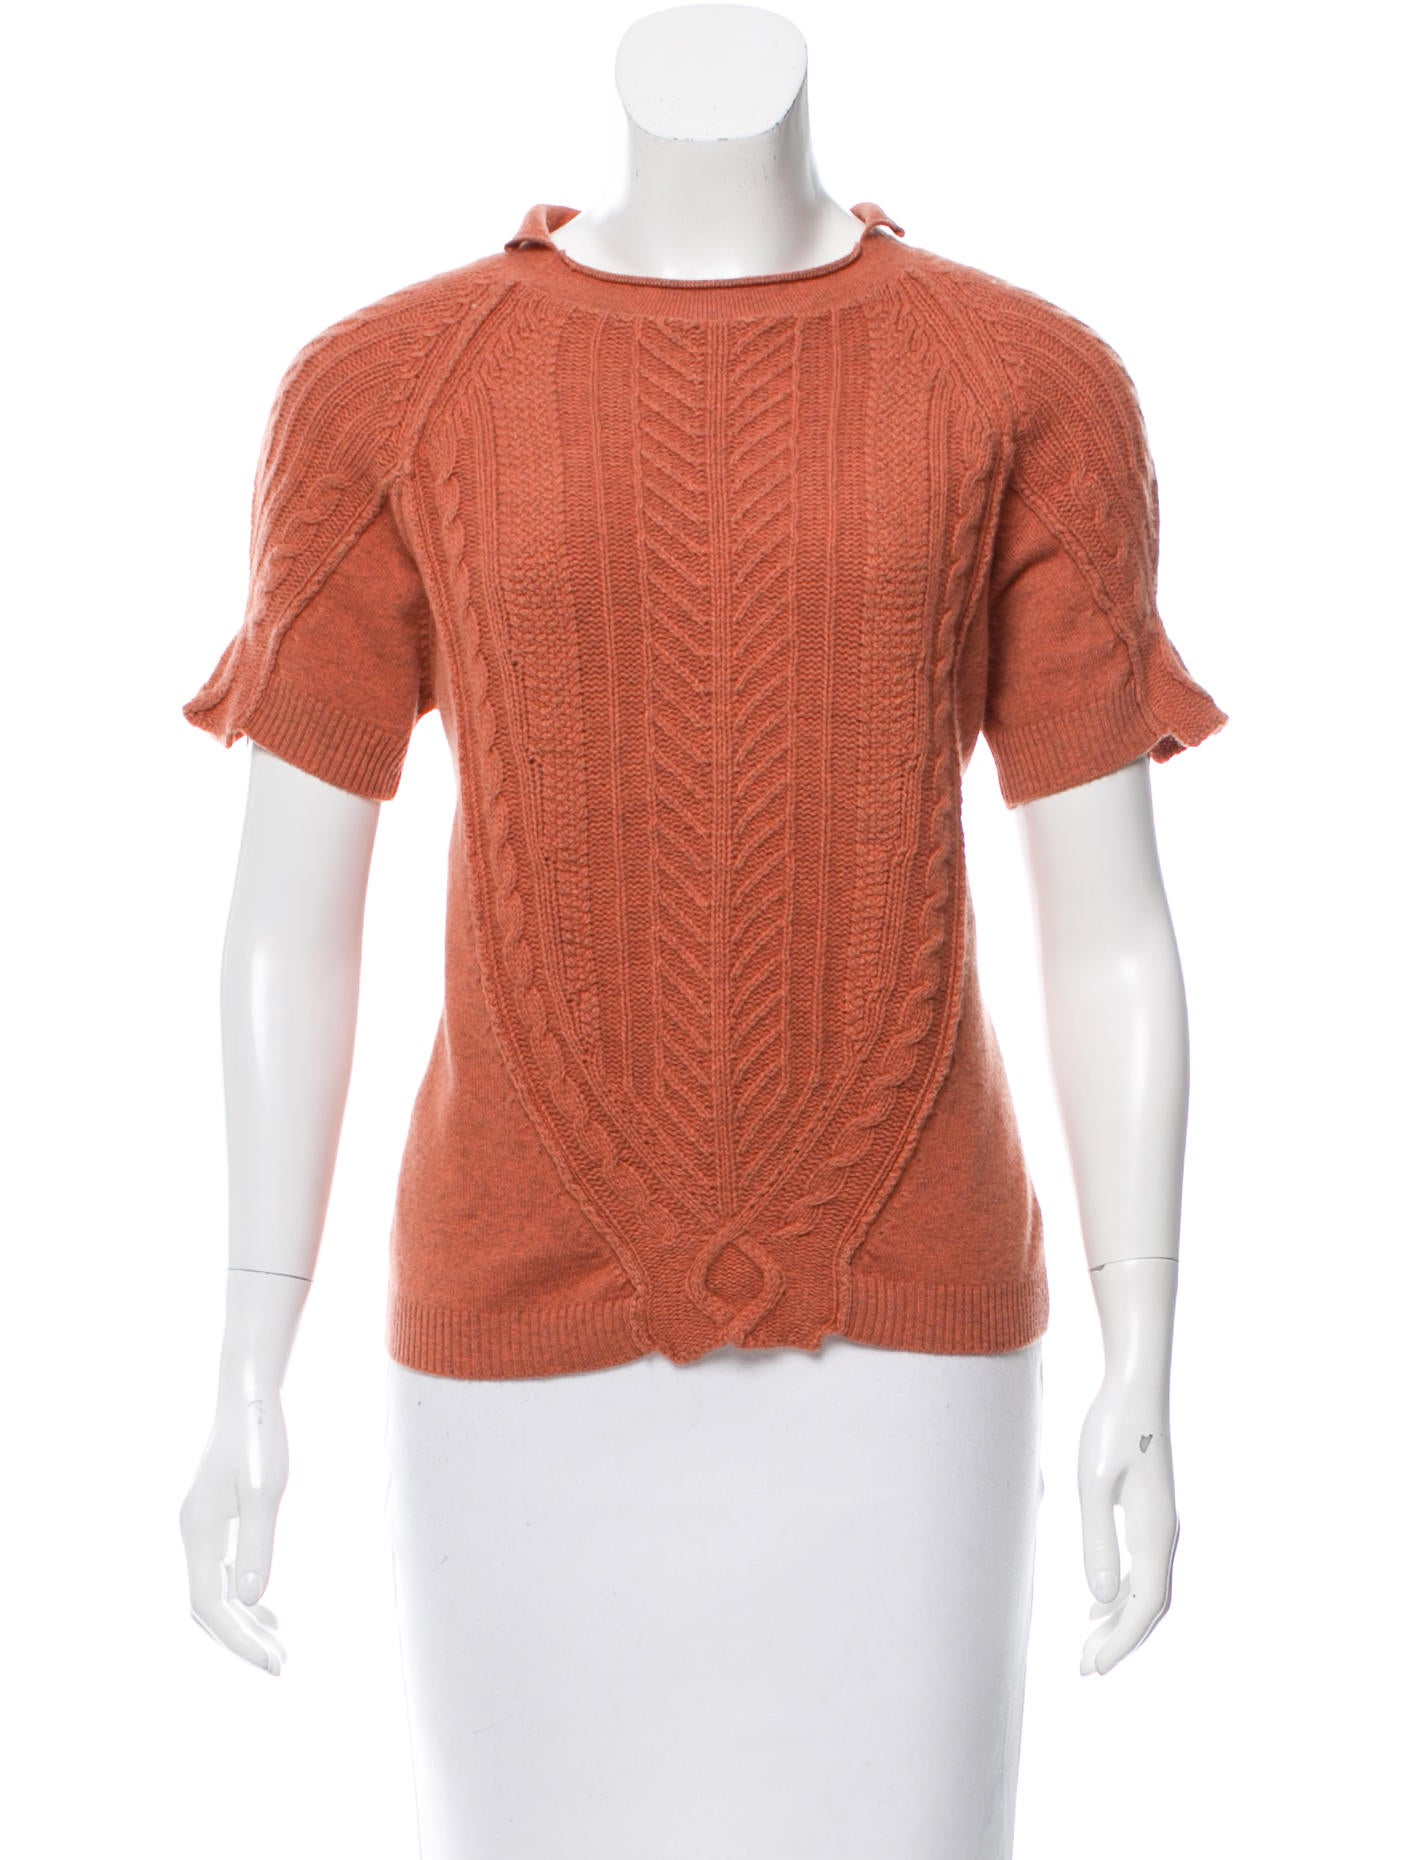 Etro merino wool cashmere blend sweater w tags for Merino wool shirt womens